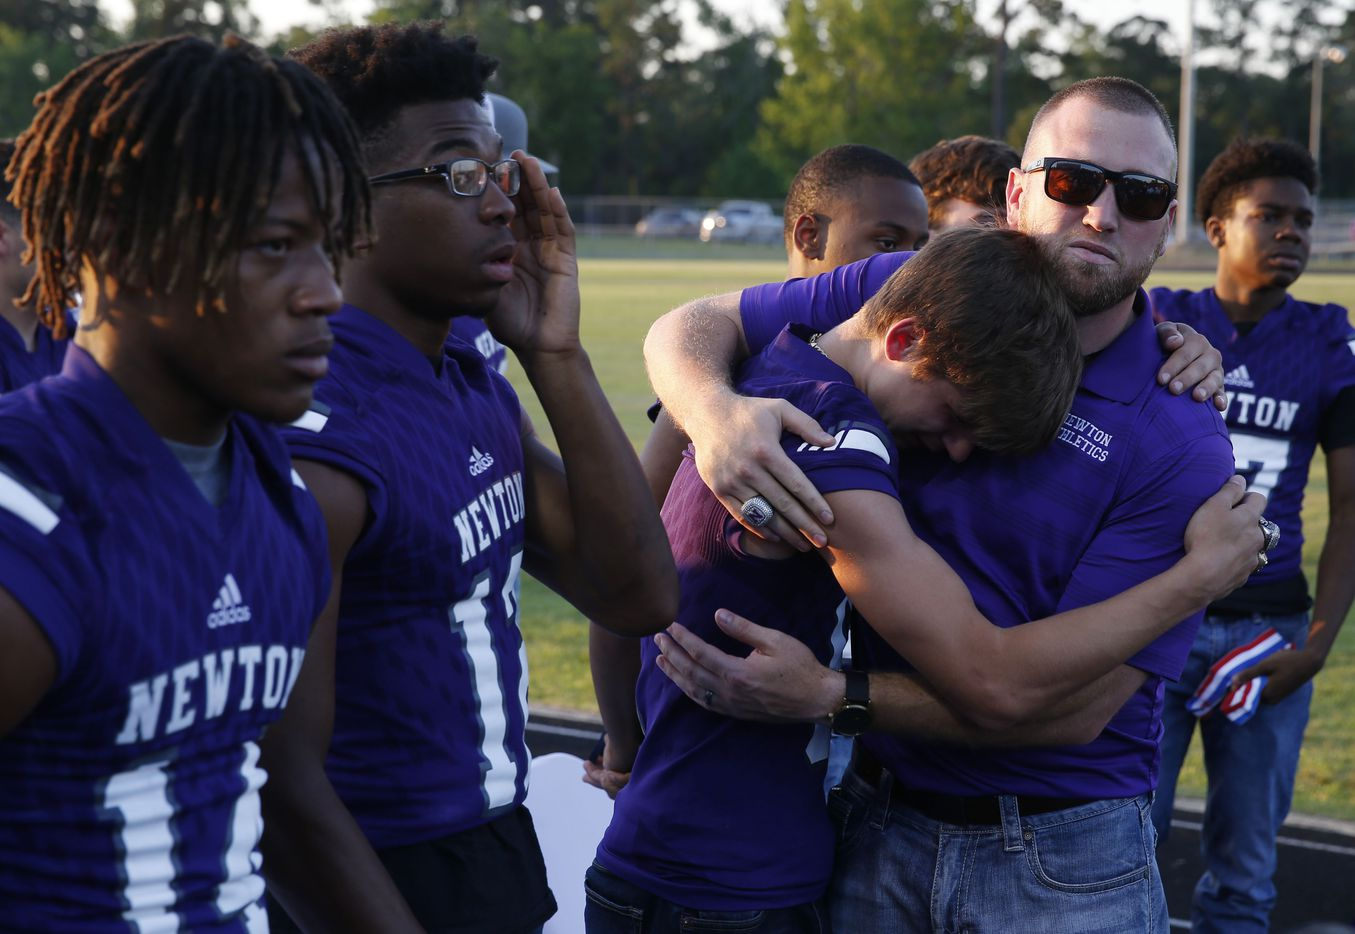 """Current head football coach and son Drew Johnston hugs Newton's Nate Williams (6) during the memorial service for Newton High School head football coach William Theodore """"W.T."""" Johnston at Curtis Barbay Field at Newton High School in Newton, Texas on Wednesday, May 15, 2019. (Vernon Bryant/The Dallas Morning News)"""